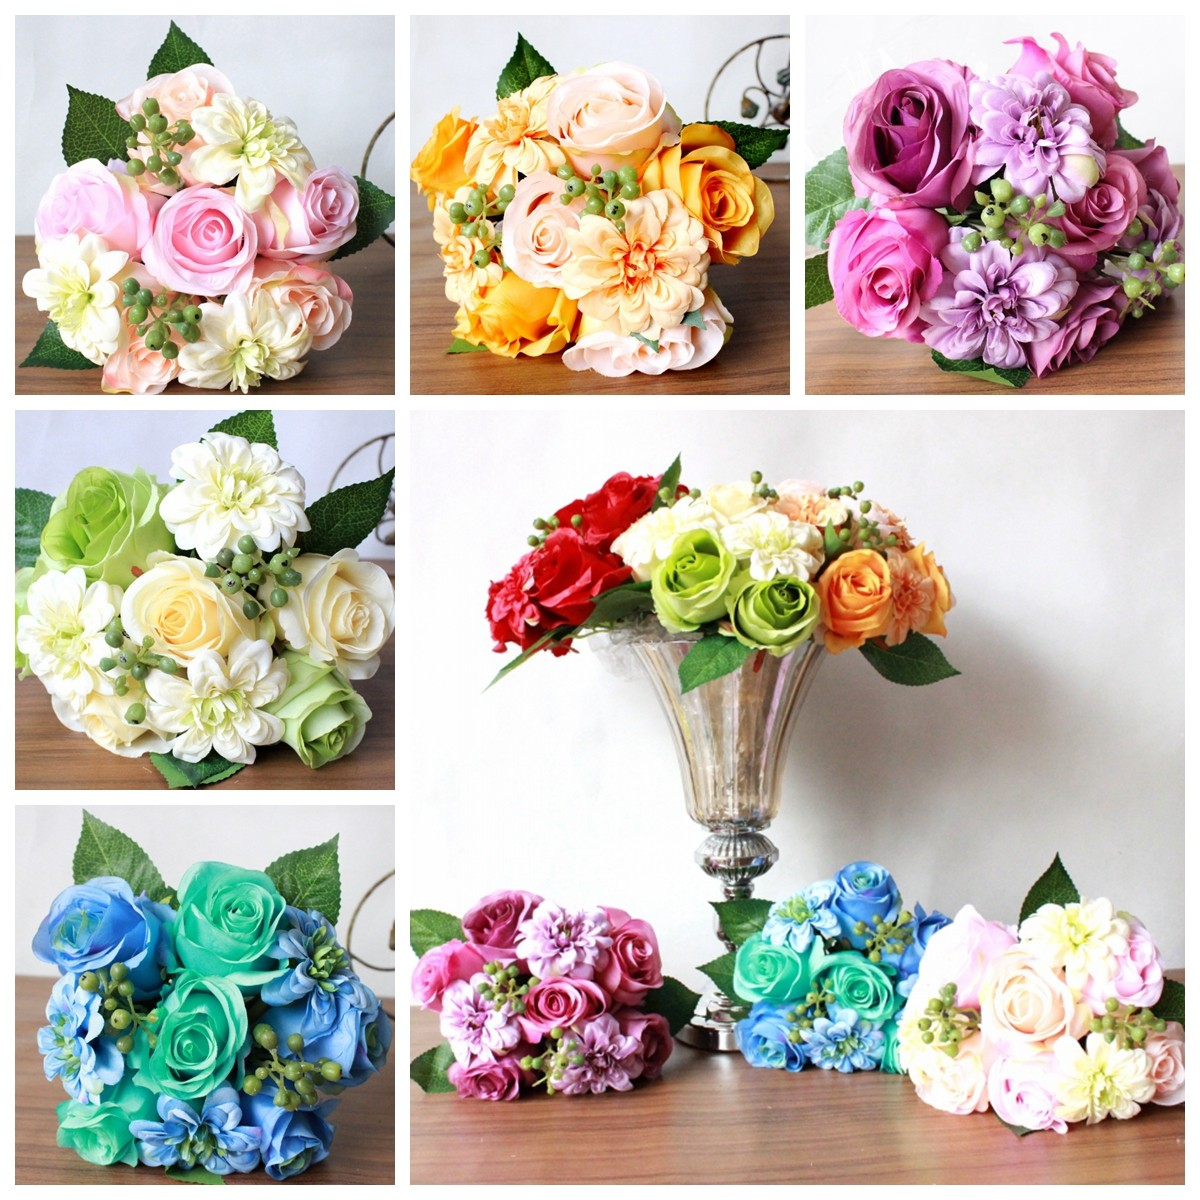 1 Bouquet 9 Heads Artificial decoration Silk Roses Flowers Bouquet Home Wedding Bridal Party Decor